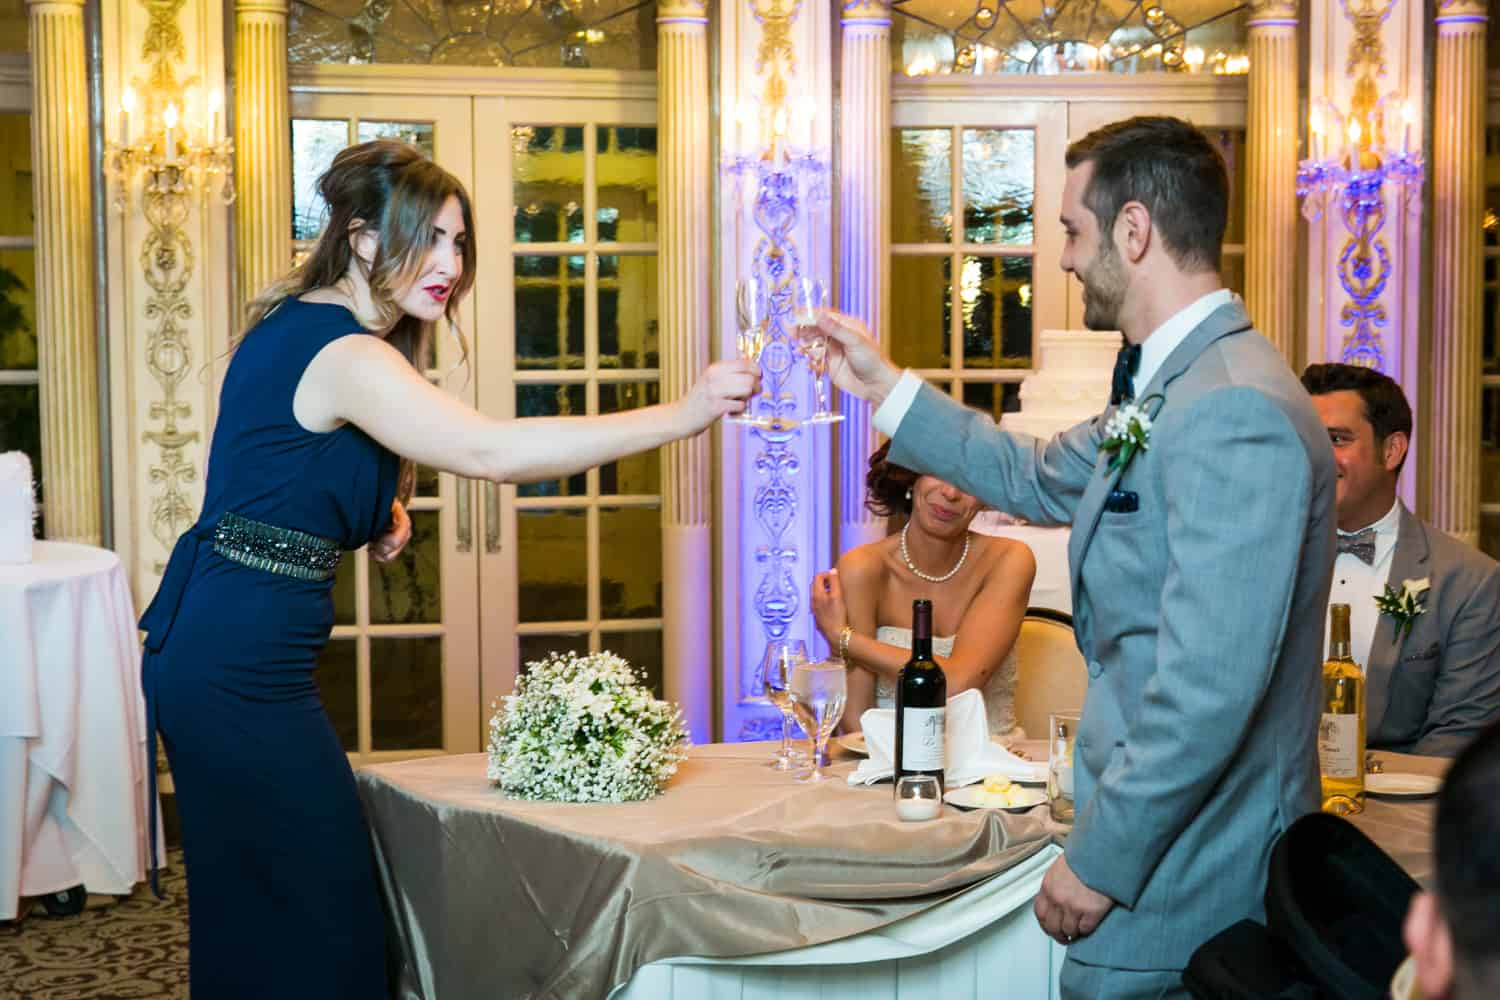 Best man and maid of honor toasting champagne glasses